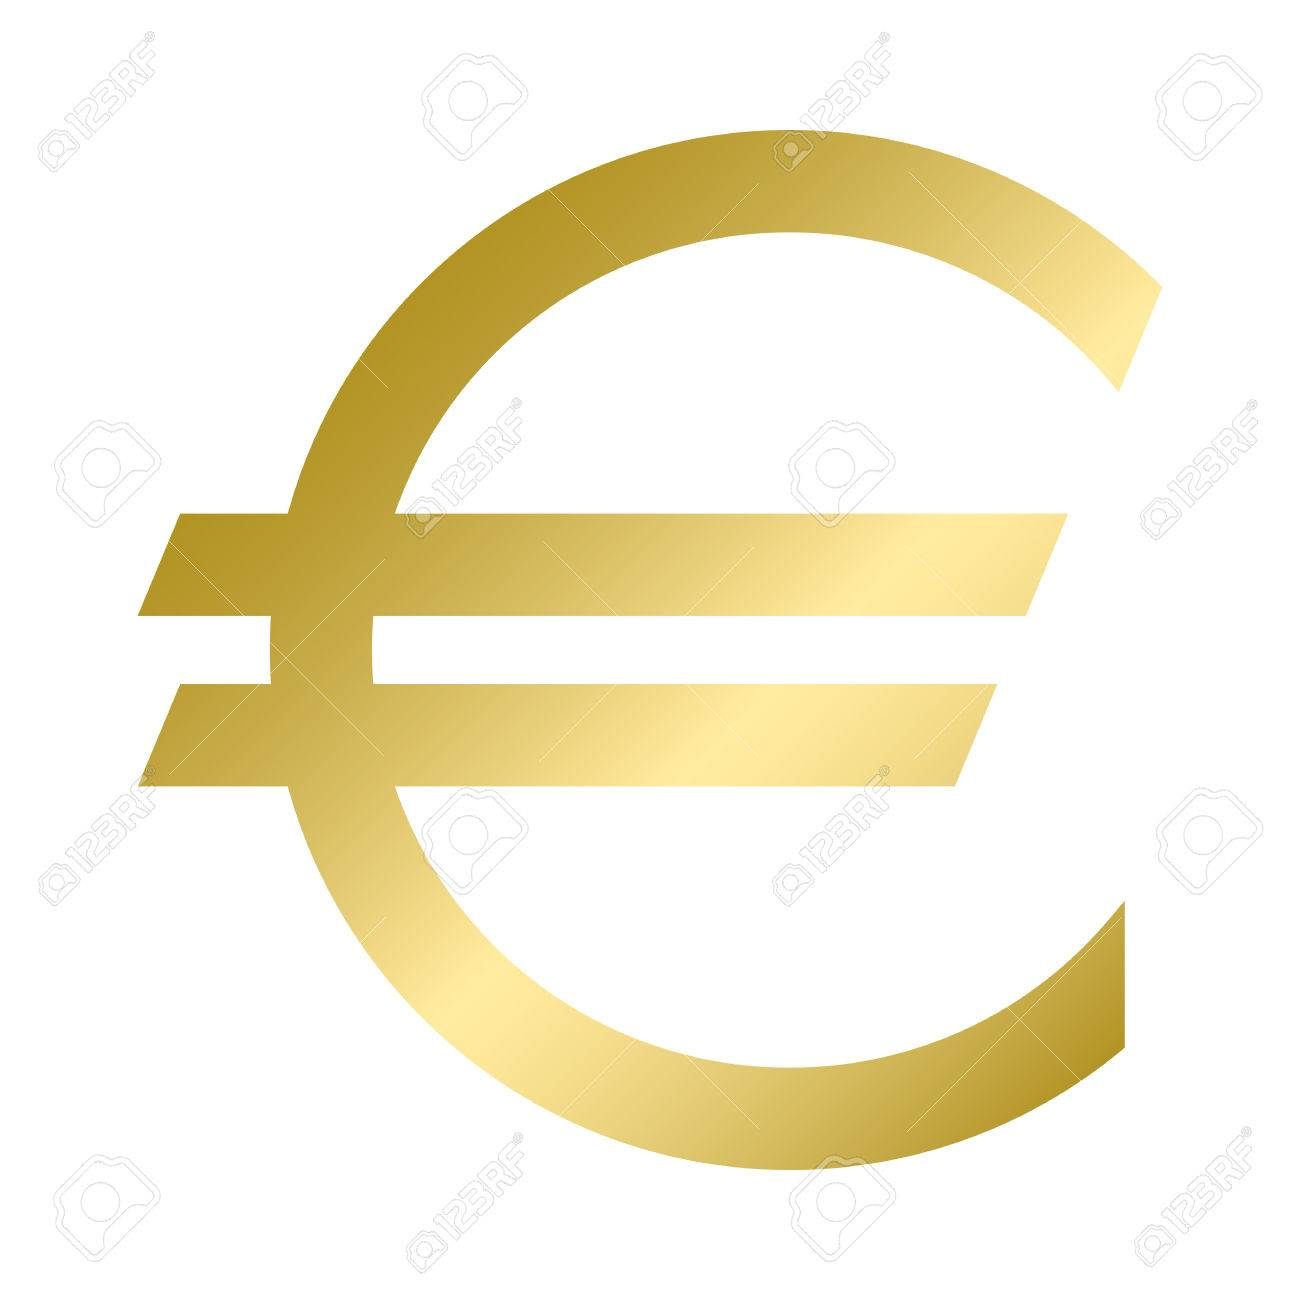 The euro currency symbol in gold color vector illustration the euro currency symbol in gold color vector illustration graphic symbol of the european buycottarizona Choice Image